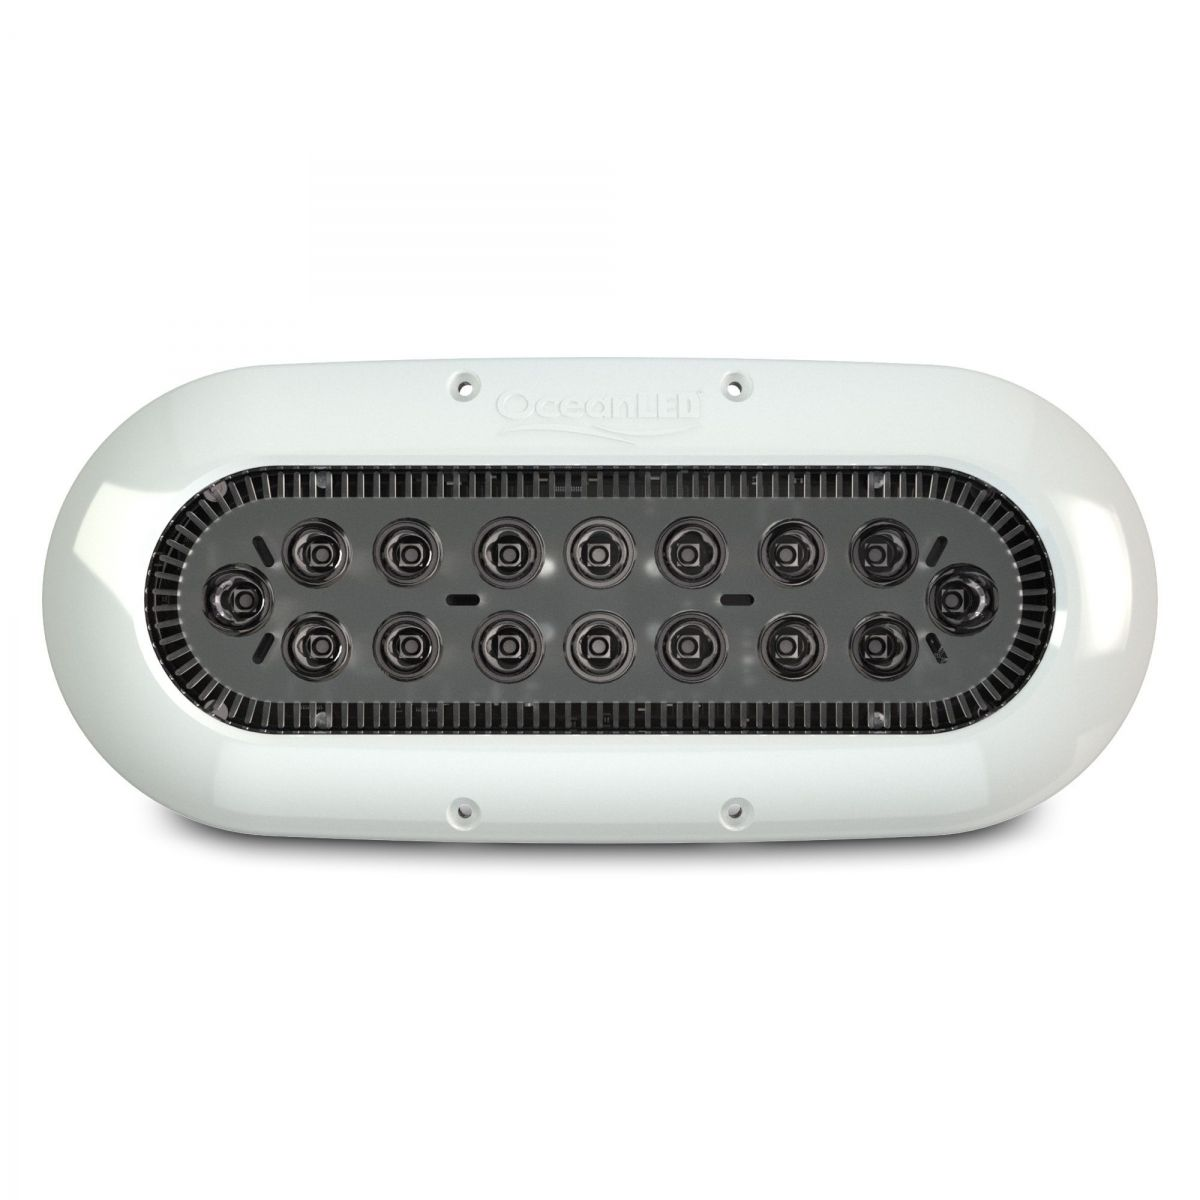 LED svjetlo OceanLED X-Series X16 White